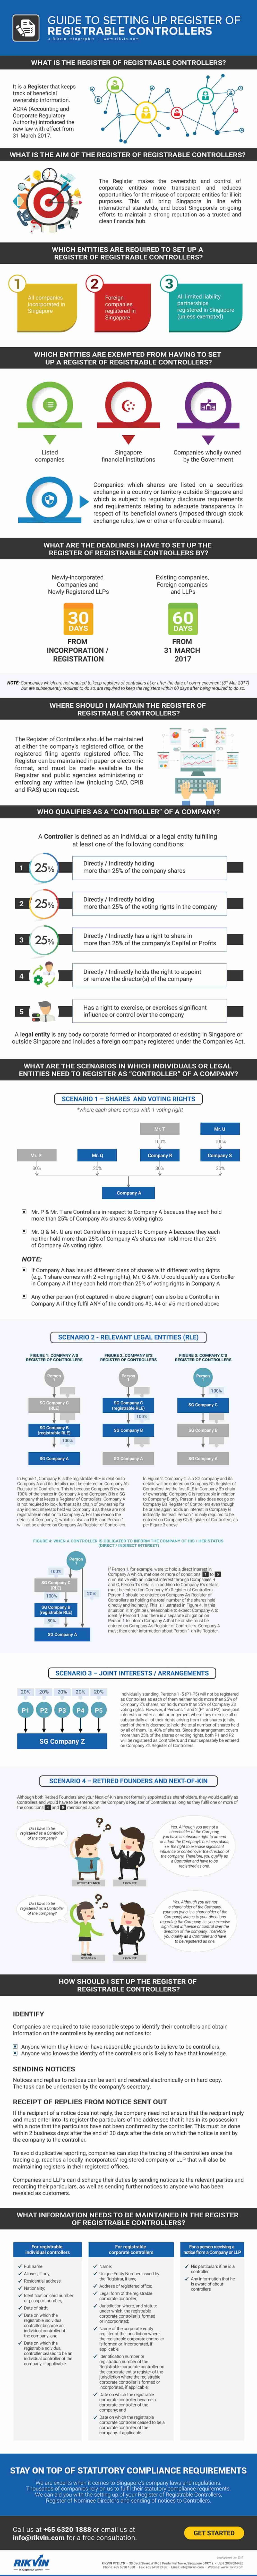 register-of-registrable-controllers_rikvin_infographic Your Guide to Setting Up Register of Registrable Controllers